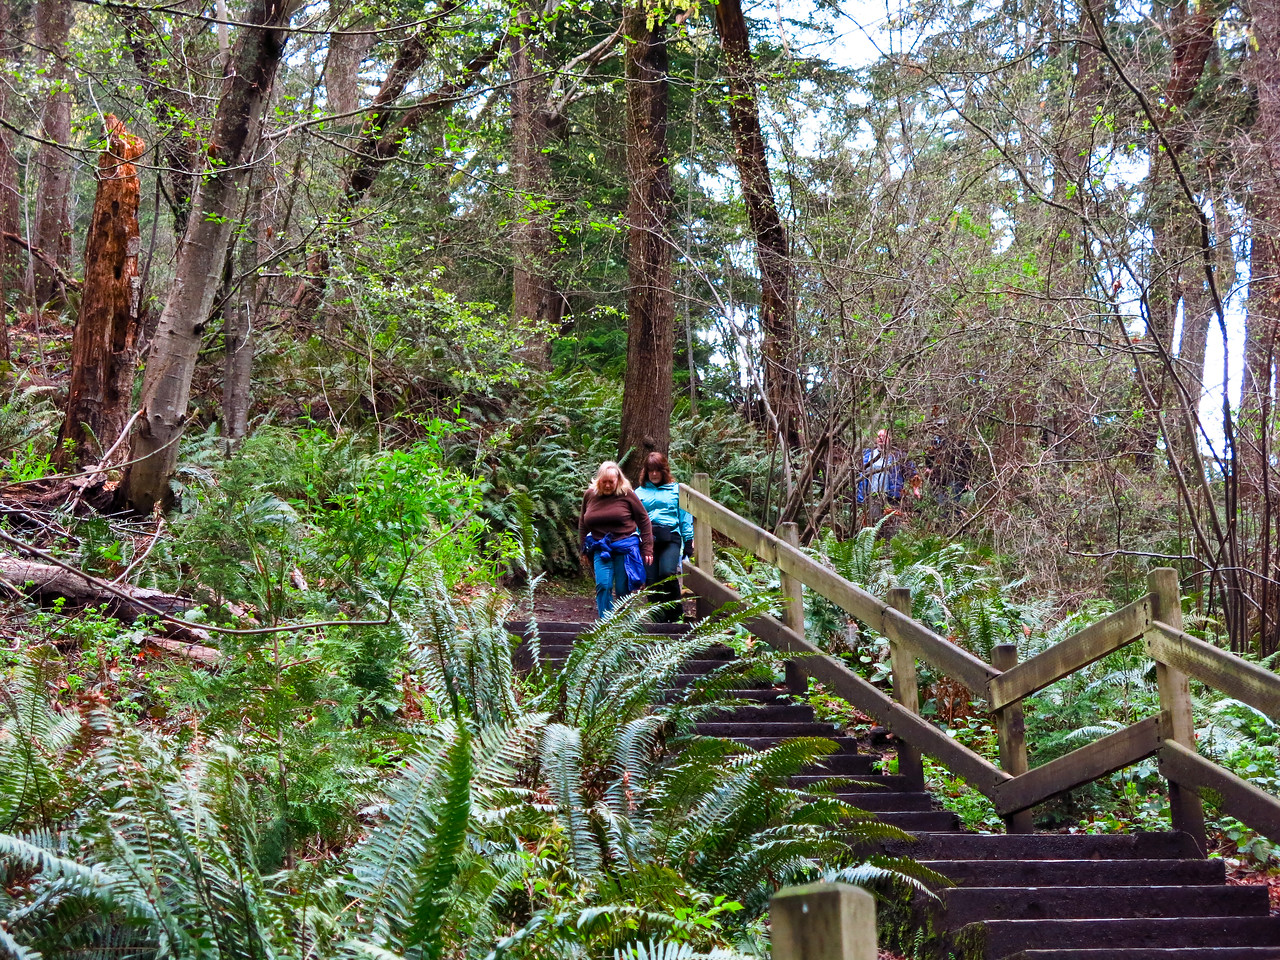 The dirt trail went up and down in Chism Beach Park.  This stairway led down to the beach.